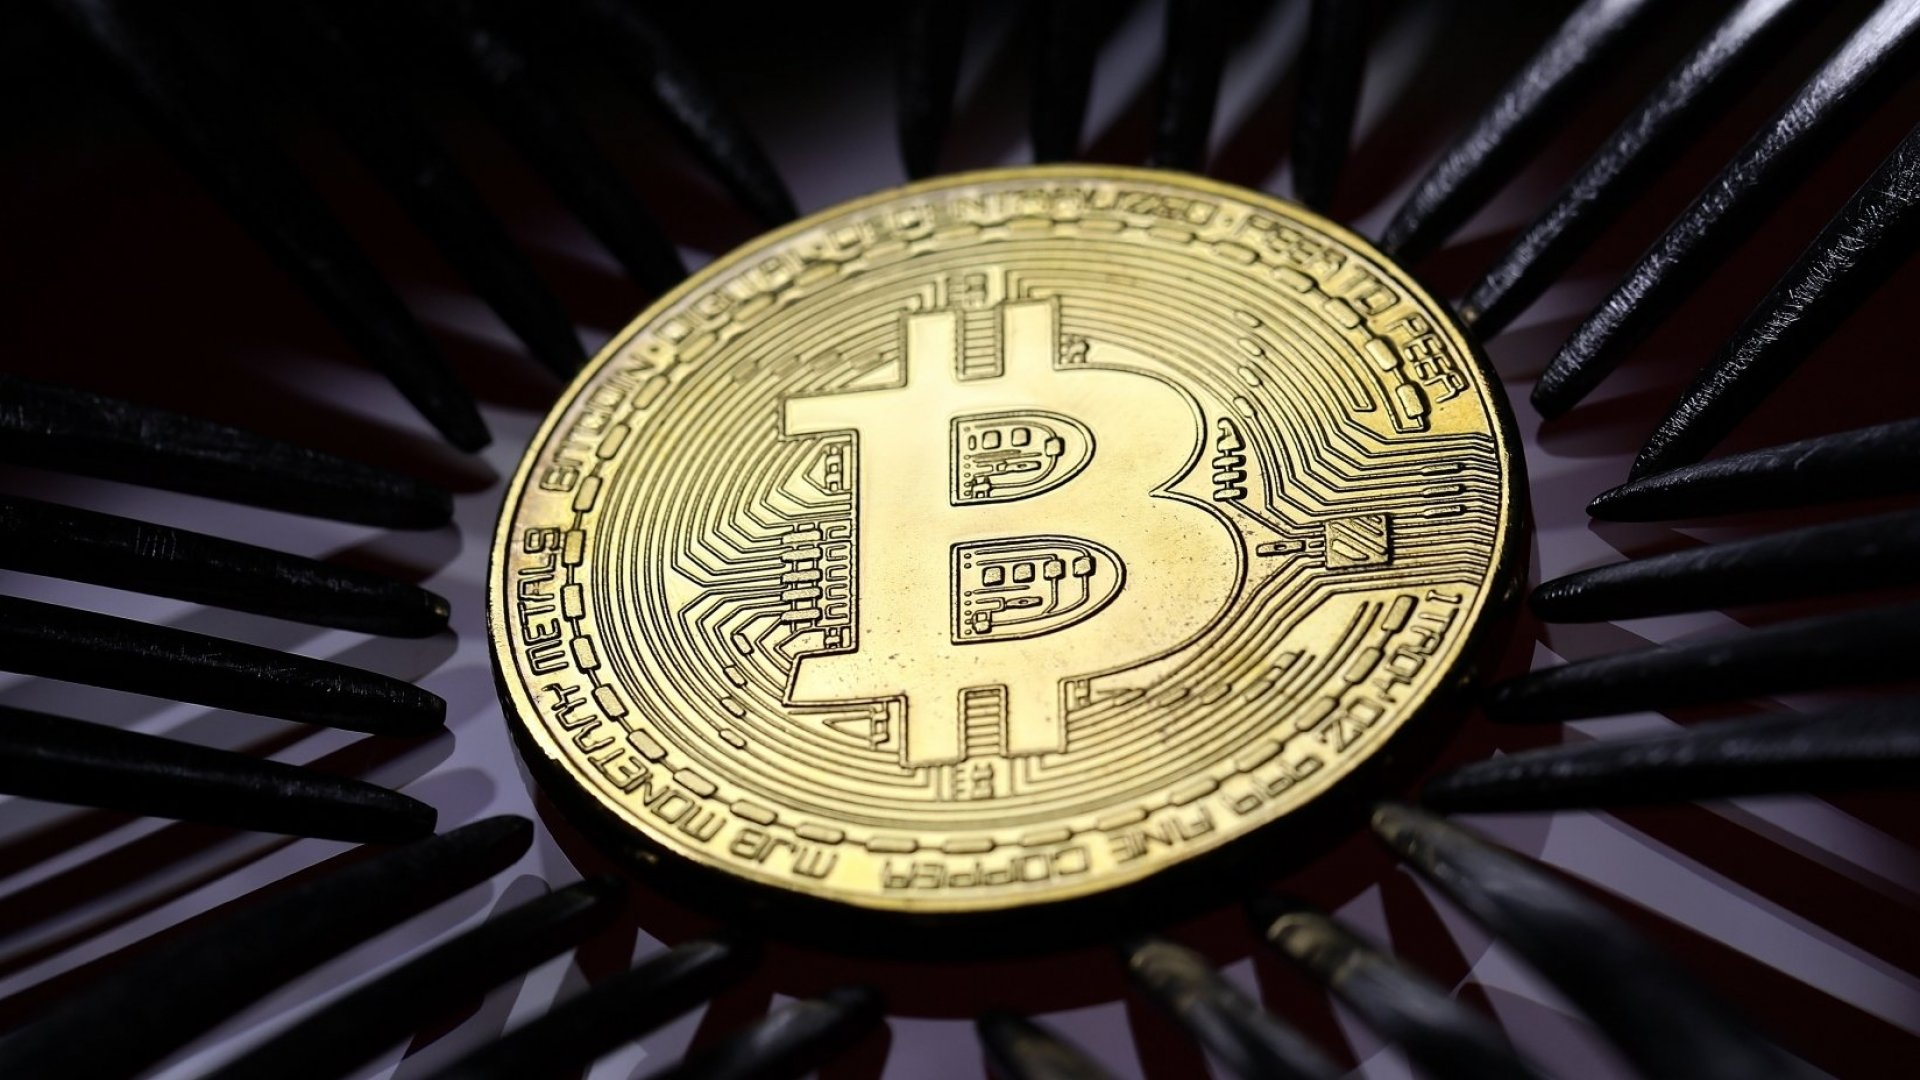 Yes, Bitcoin Crashed. But Another Big Cryptocurrency Is Pushing Record Highs Again